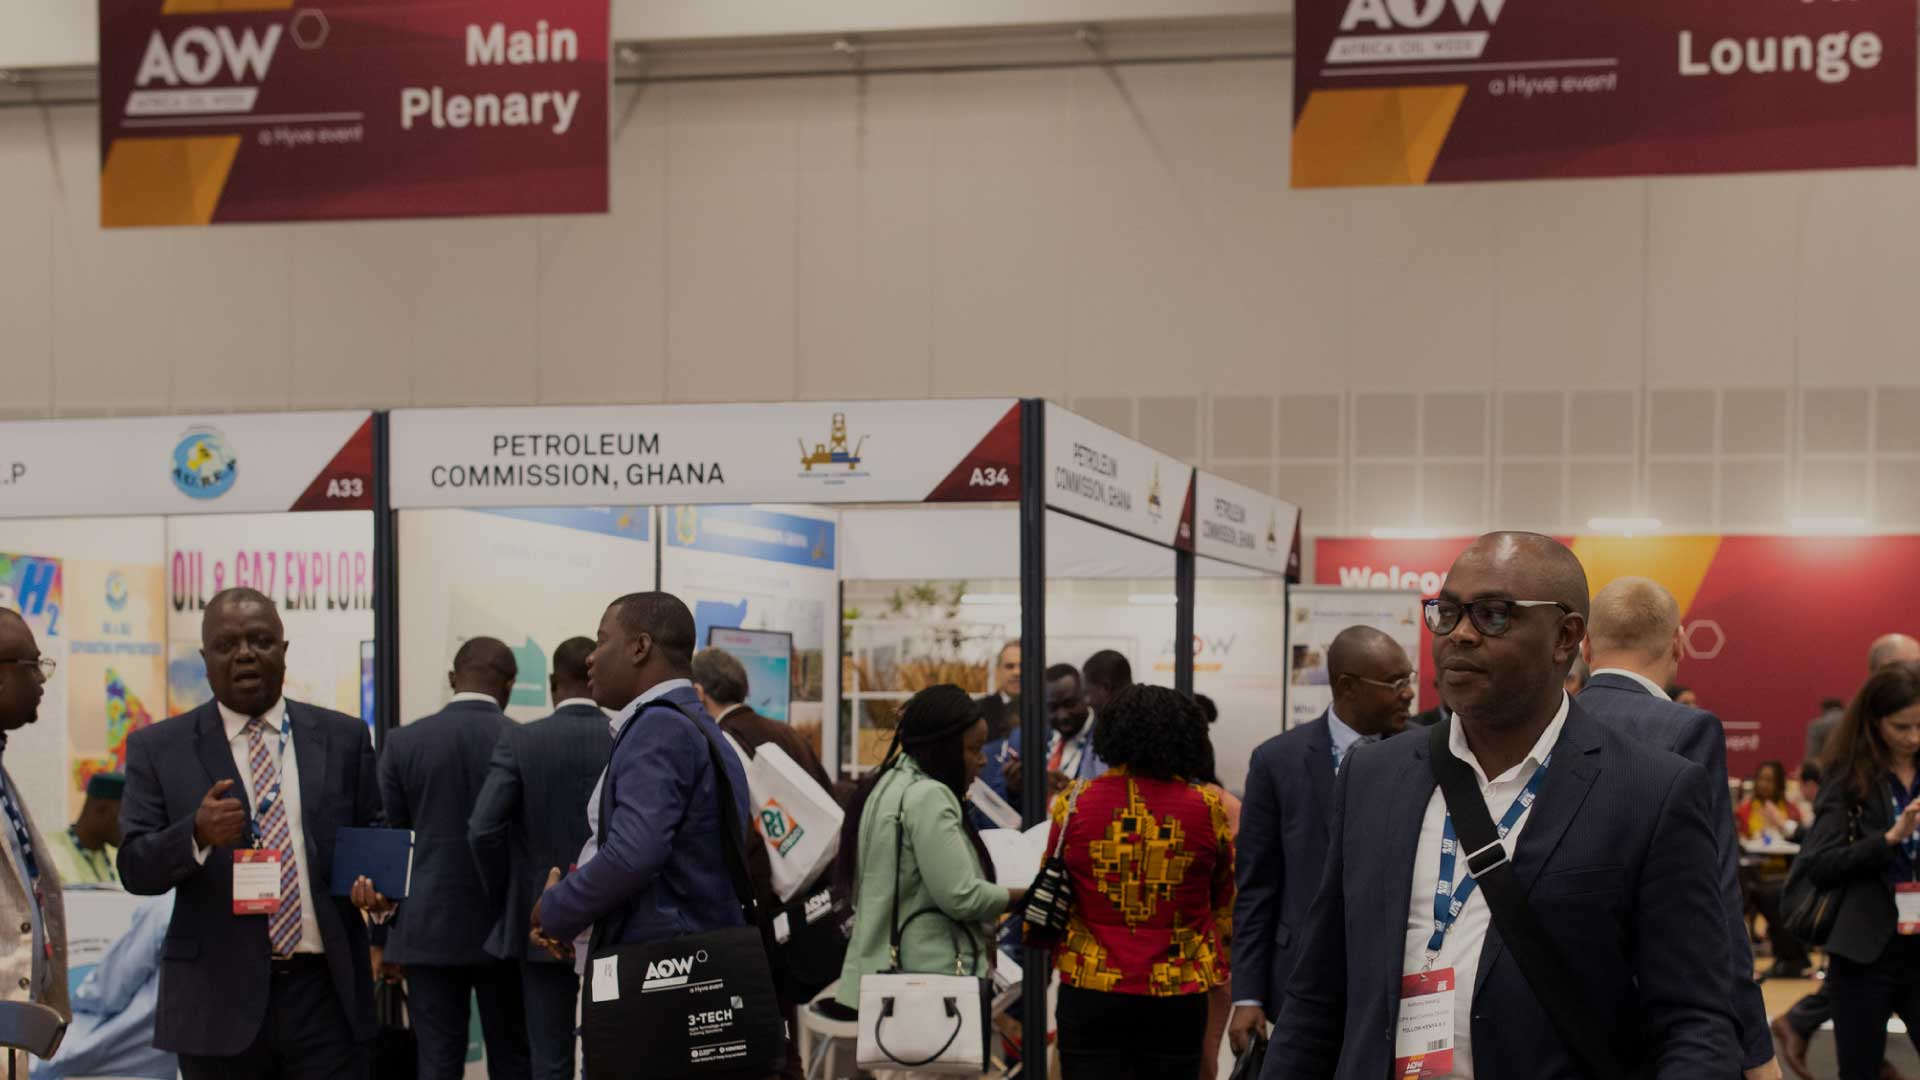 KEA Attends Africa Oil Week 2019